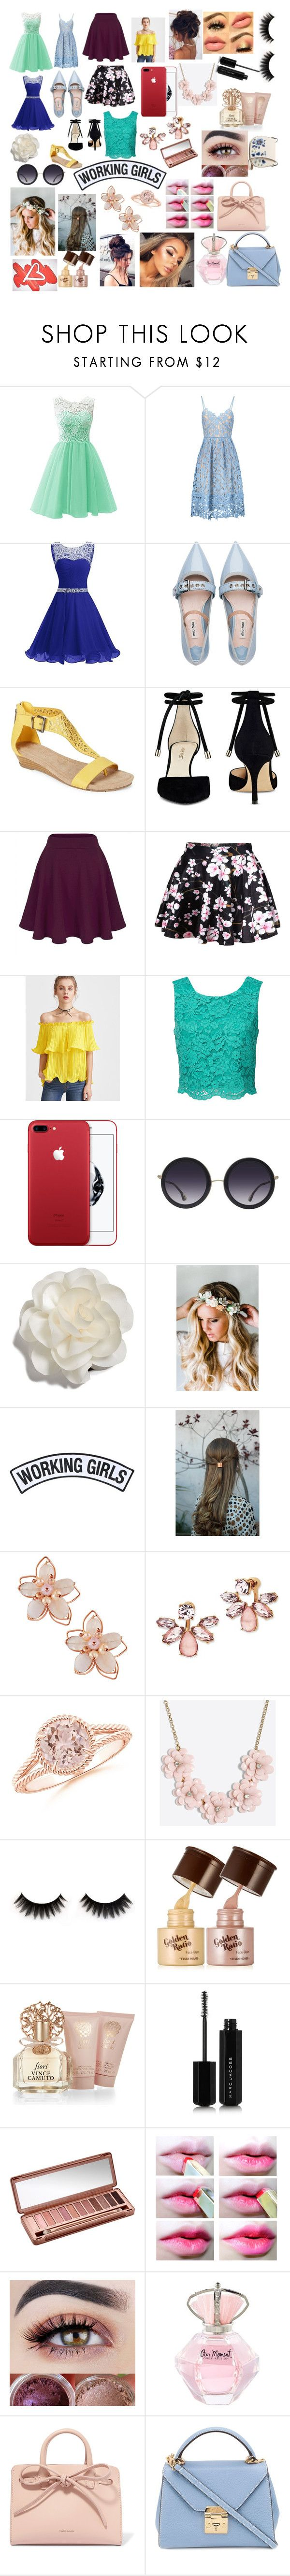 """""""Spring Party"""" by fashionista0333 ❤ liked on Polyvore featuring Miu Miu, Kenneth Cole Reaction, Nine West, WithChic, Alice + Olivia, Cara, Emily Rose Flower Crowns, Working Girls, NAKAMOL and Marchesa"""